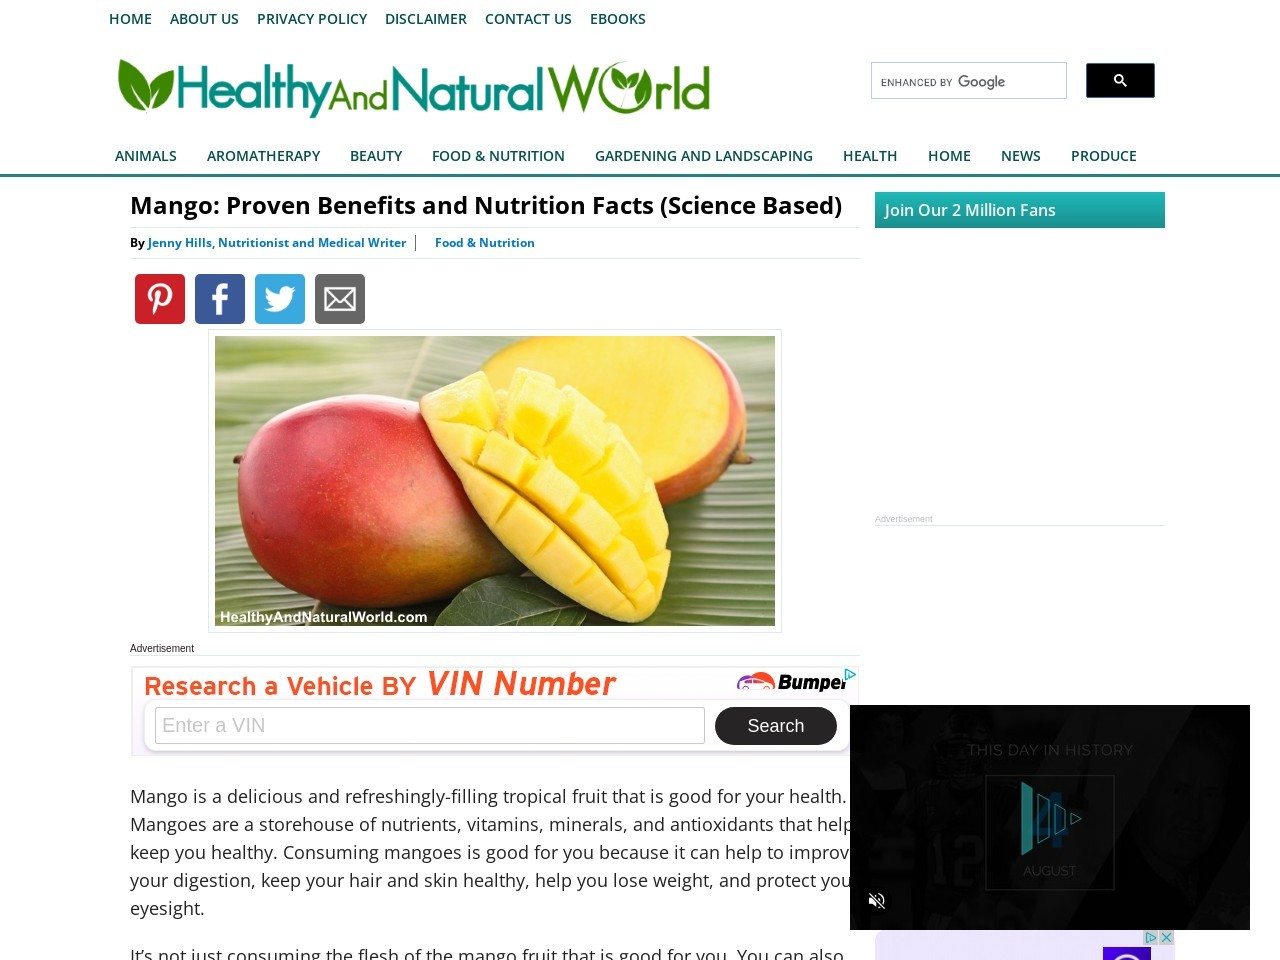 Mango: Proven Benefits and Nutrition Facts (Science Based)